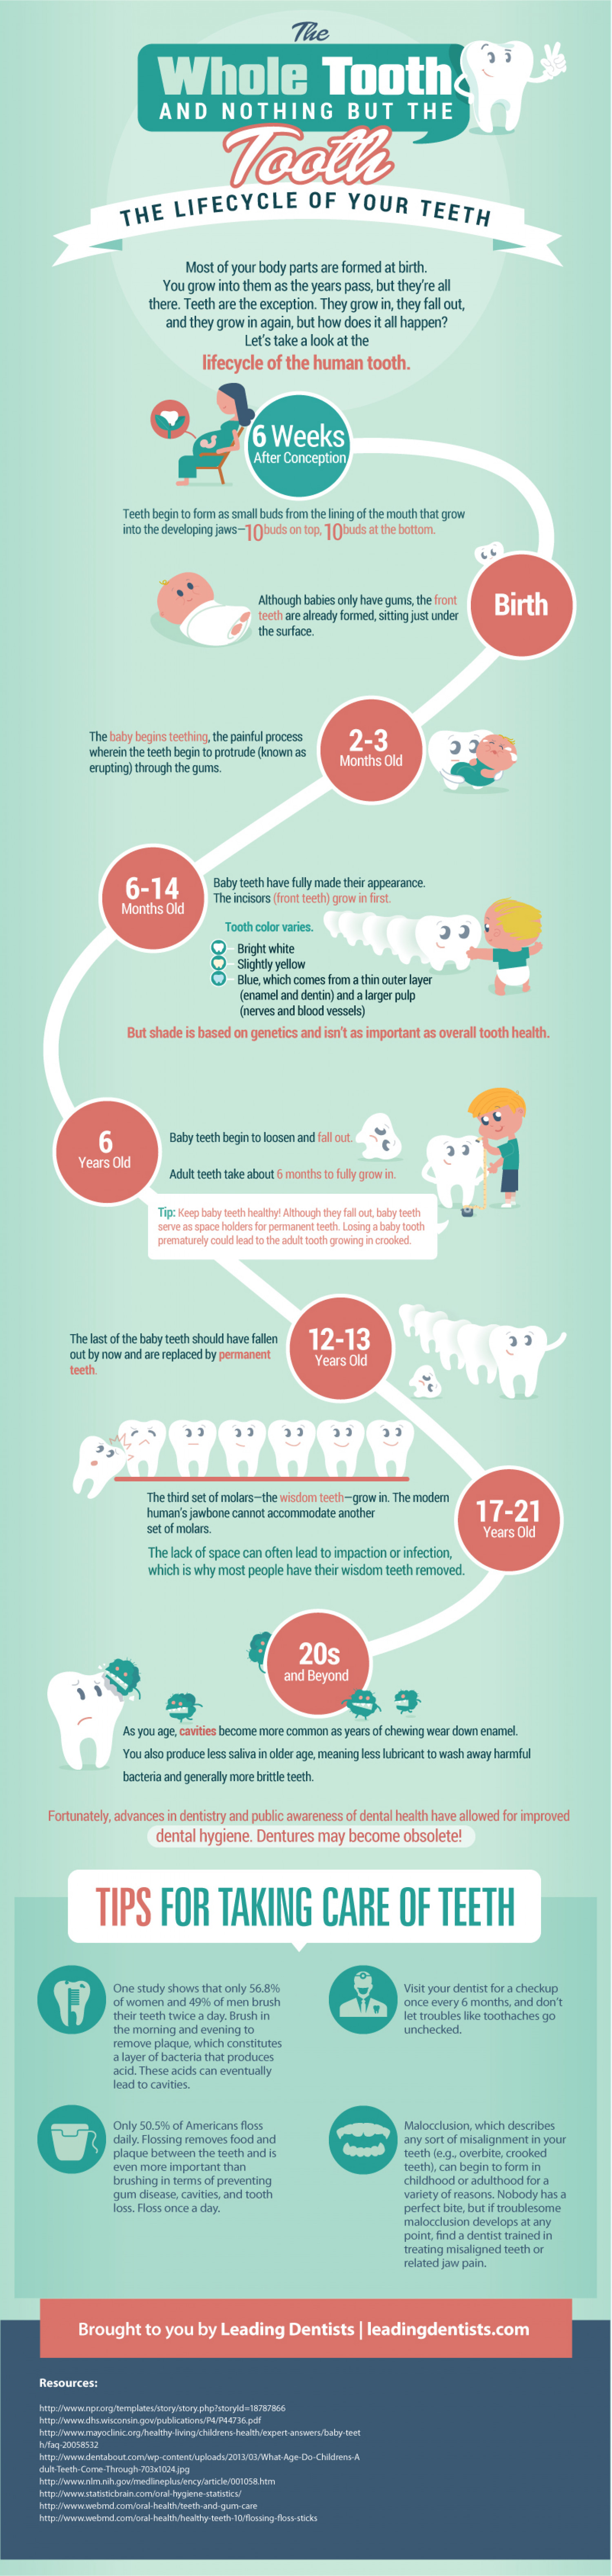 The Whole Tooth and Nothing But the Tooth: The Lifecycle of Your Teeth Infographic